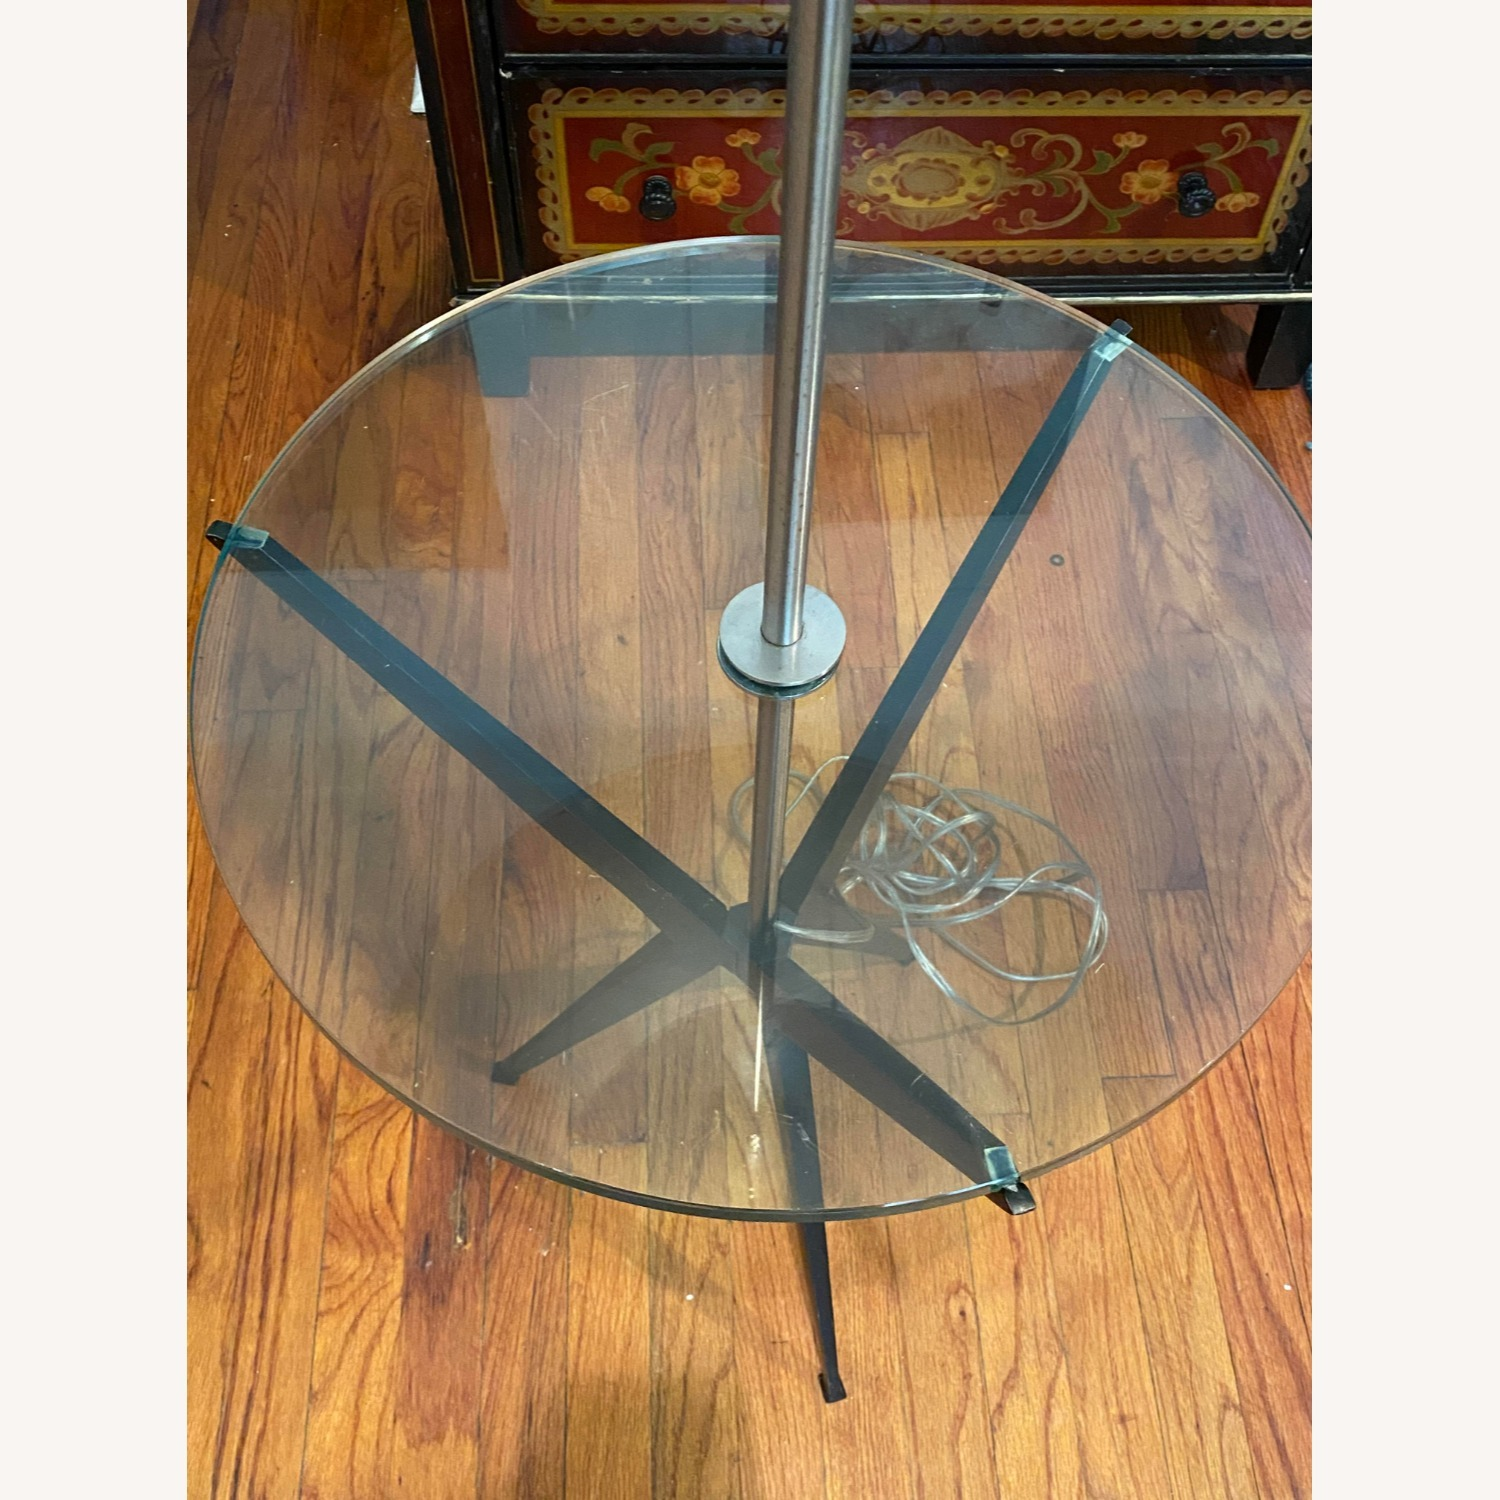 Glass Tray Table Floor Lamp w/ Drum Shade - image-7